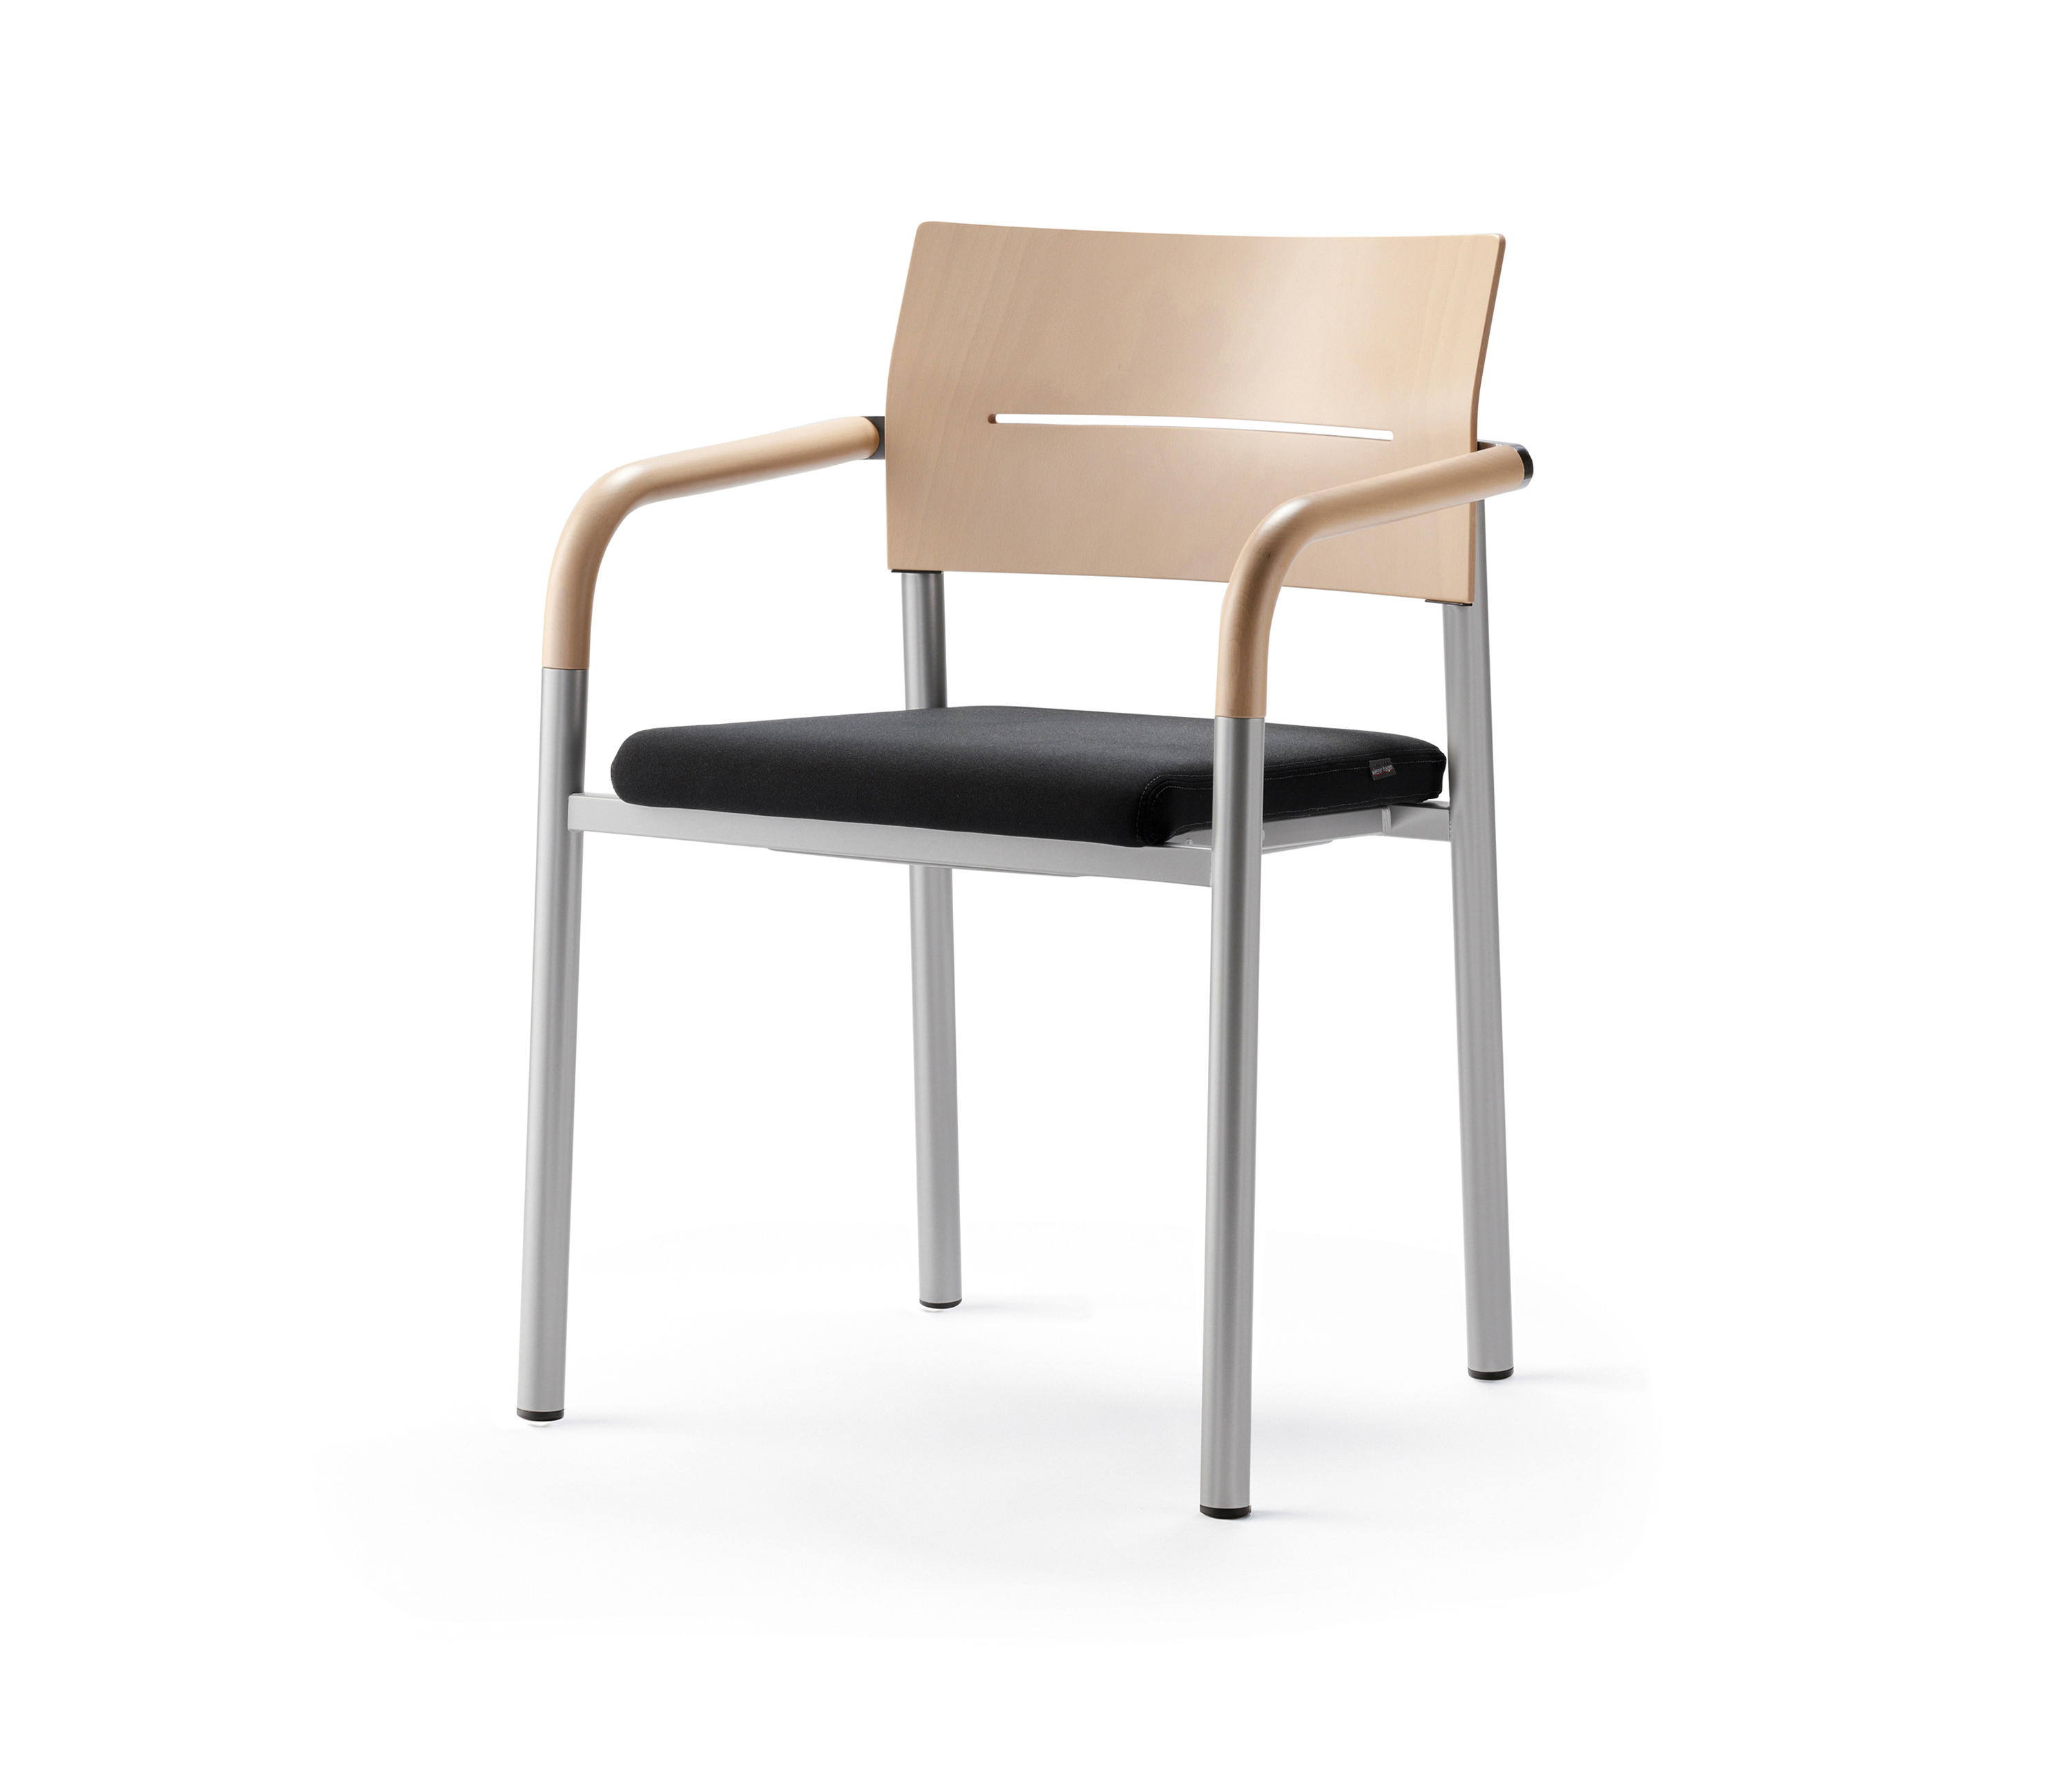 stackable chairs with arms slip cover wing back chair aluform 3 stacking beech visitors